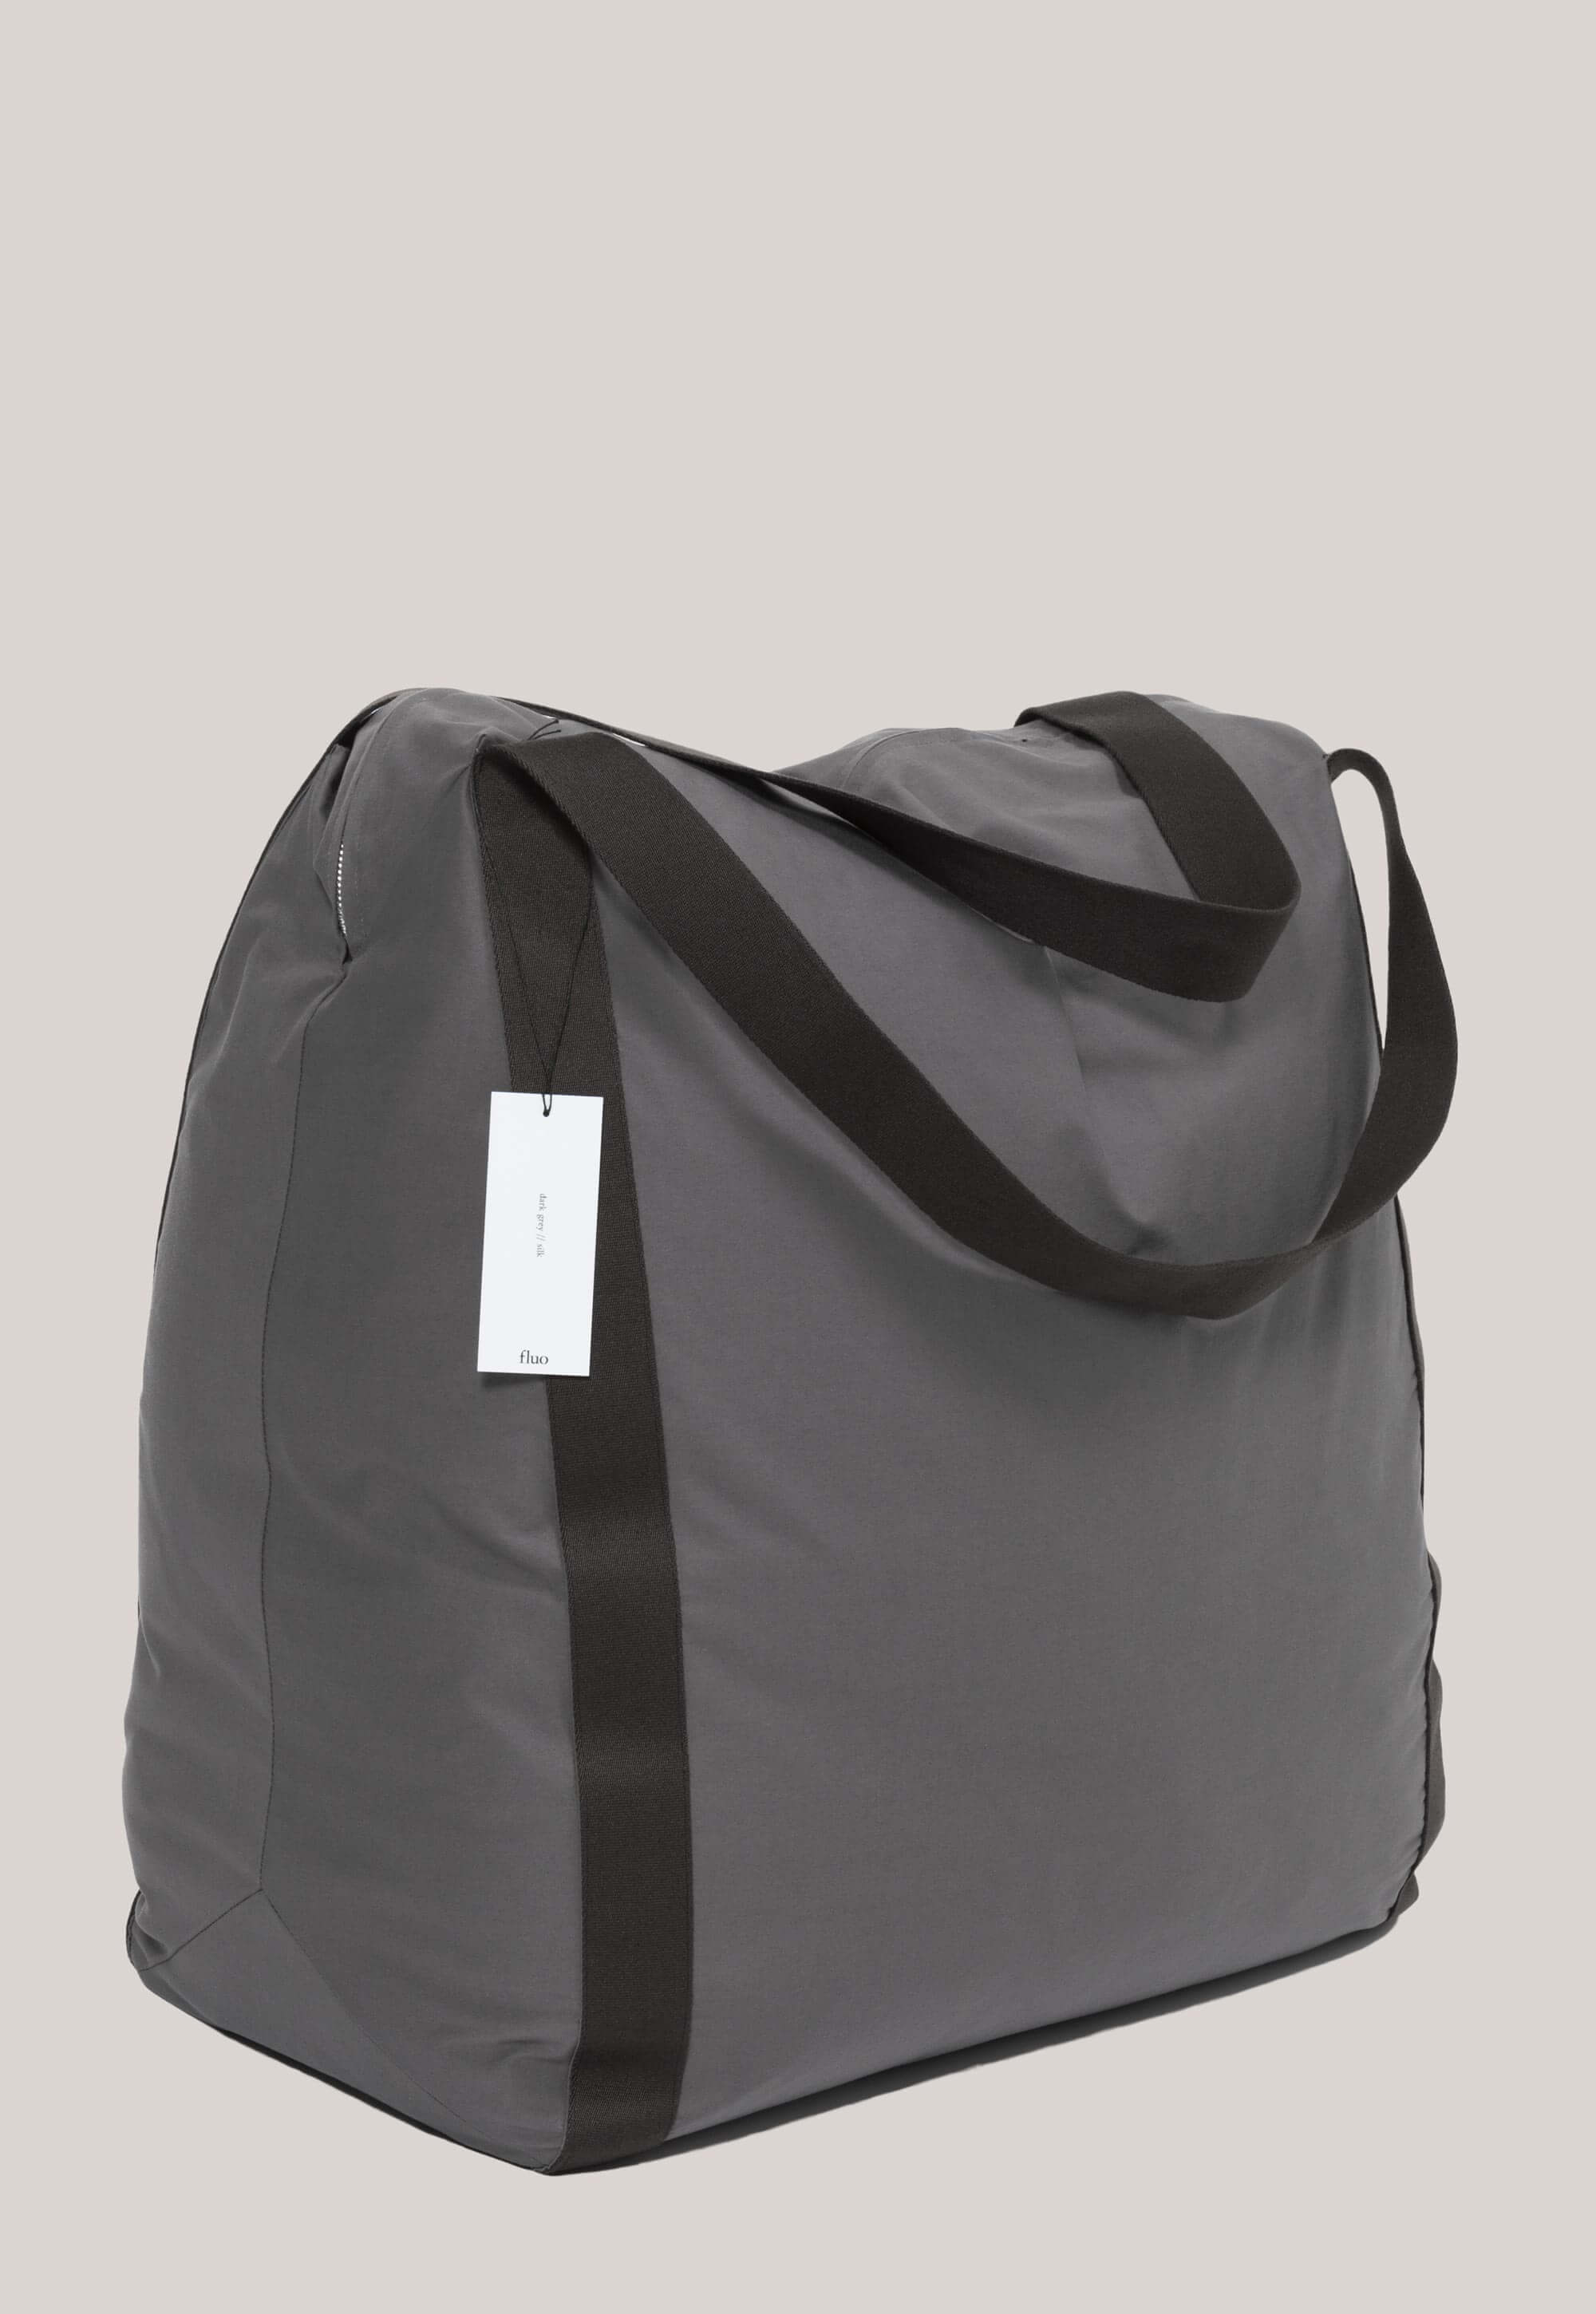 nebukuro-sleepingbag-minimal-bag-01